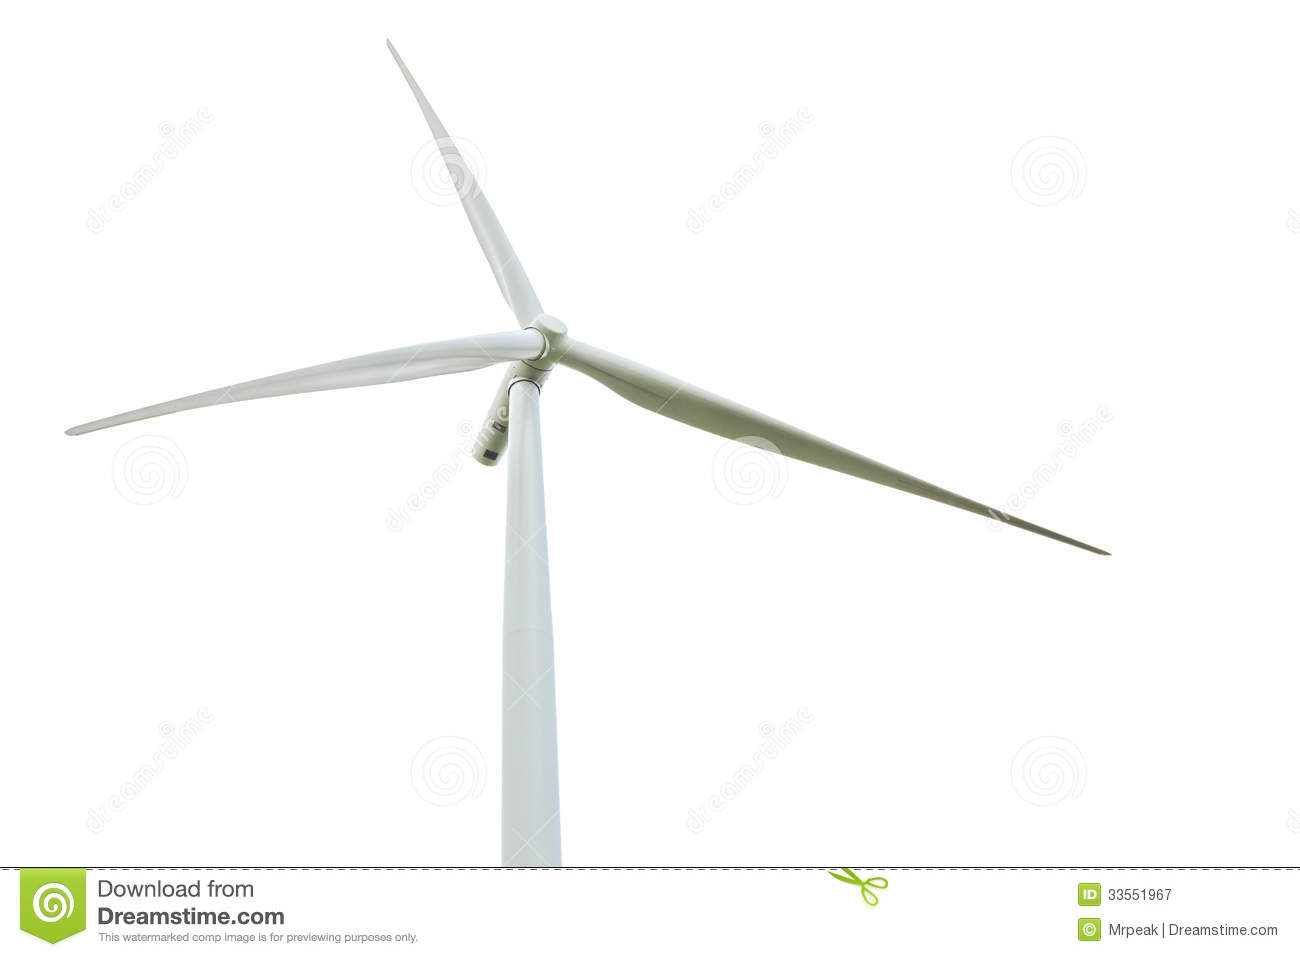 Wind Turbine Clipart No Background Isolated wind turbine